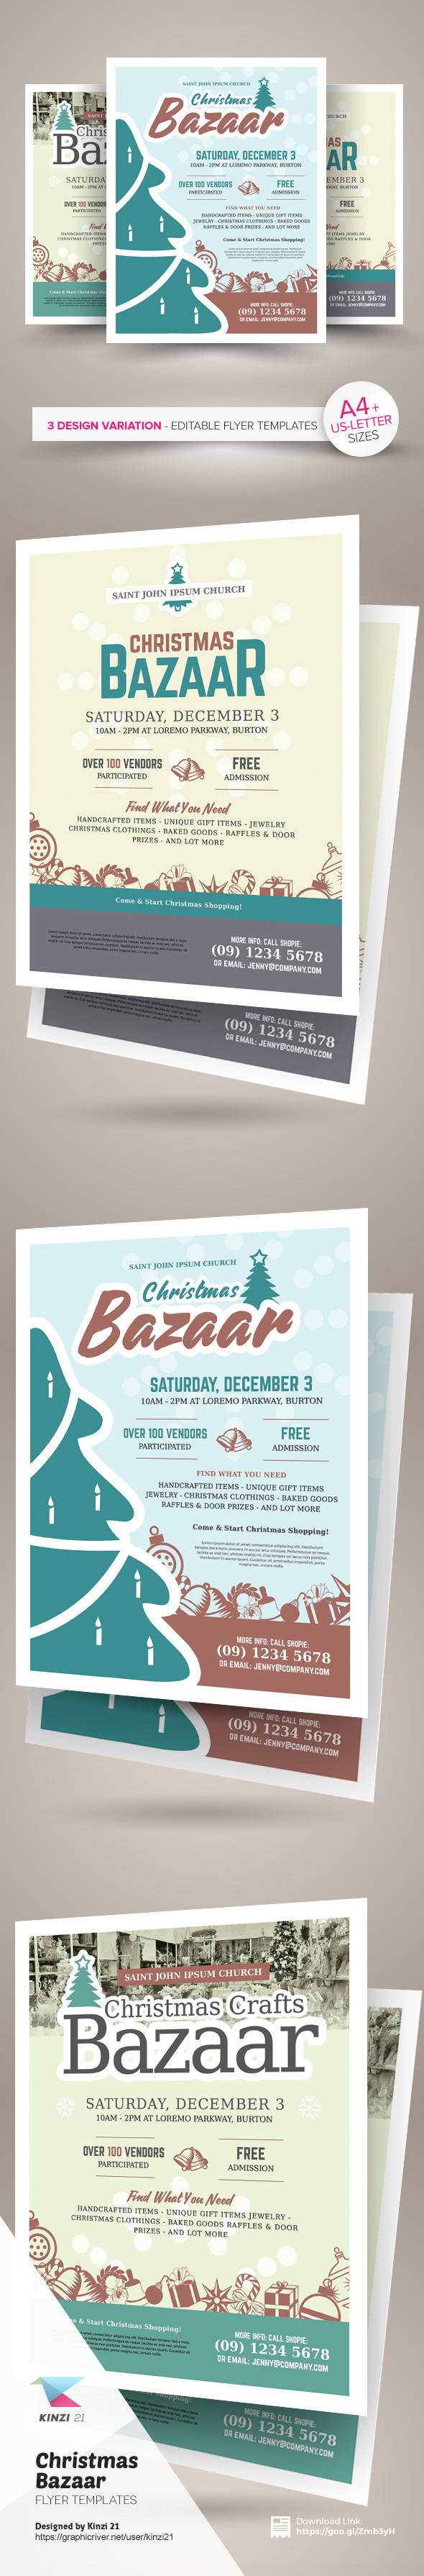 christmas bazaar flyer templates on behance christmas bazaar flyer templates are fully editable design templates created for on graphic river more info of the templates and how to get the